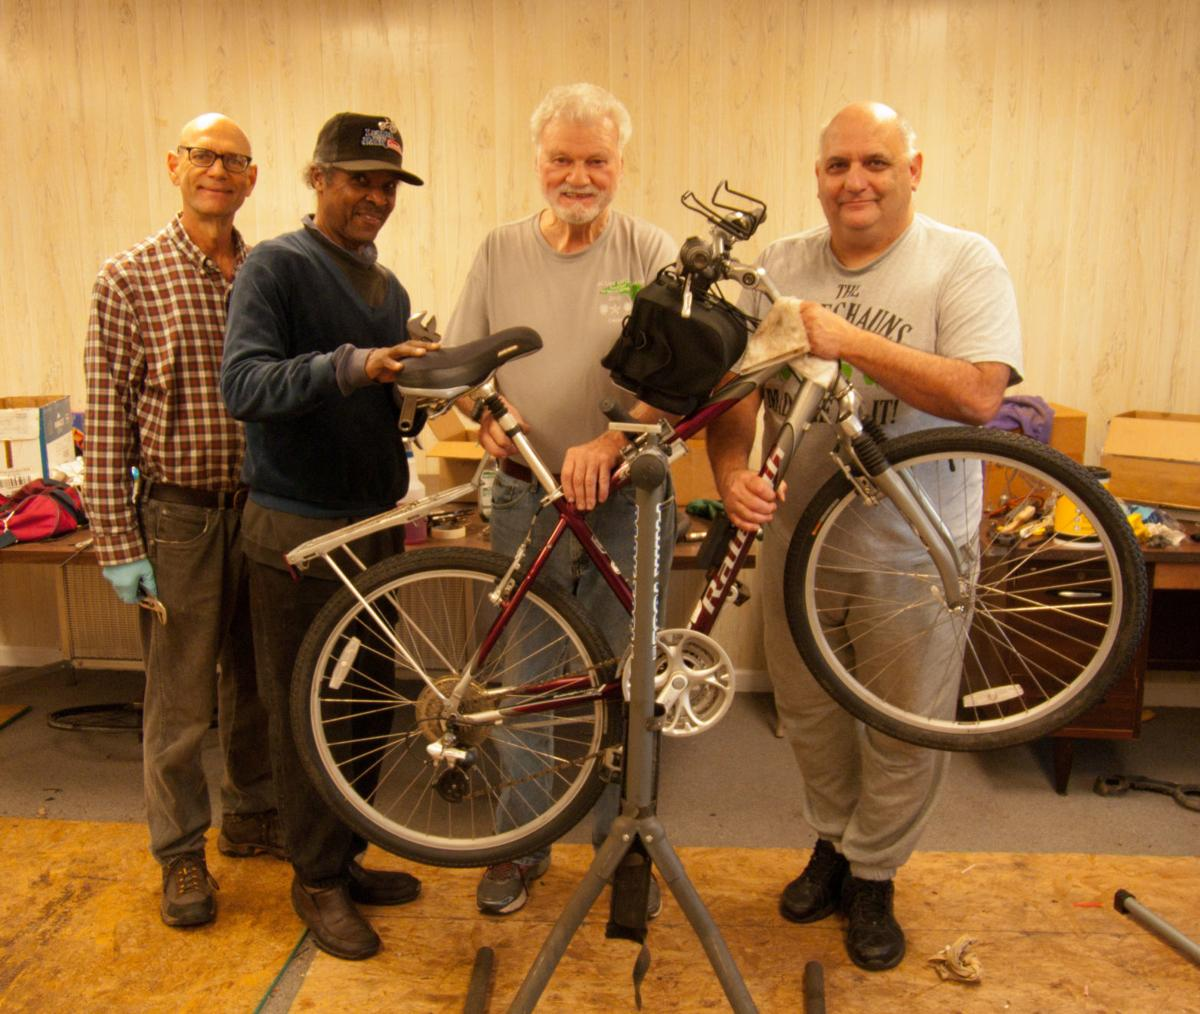 Christmas Cheer For Bikes In Morganton Nc 2020 Organizaton to distribute presents to children in need | Mnh